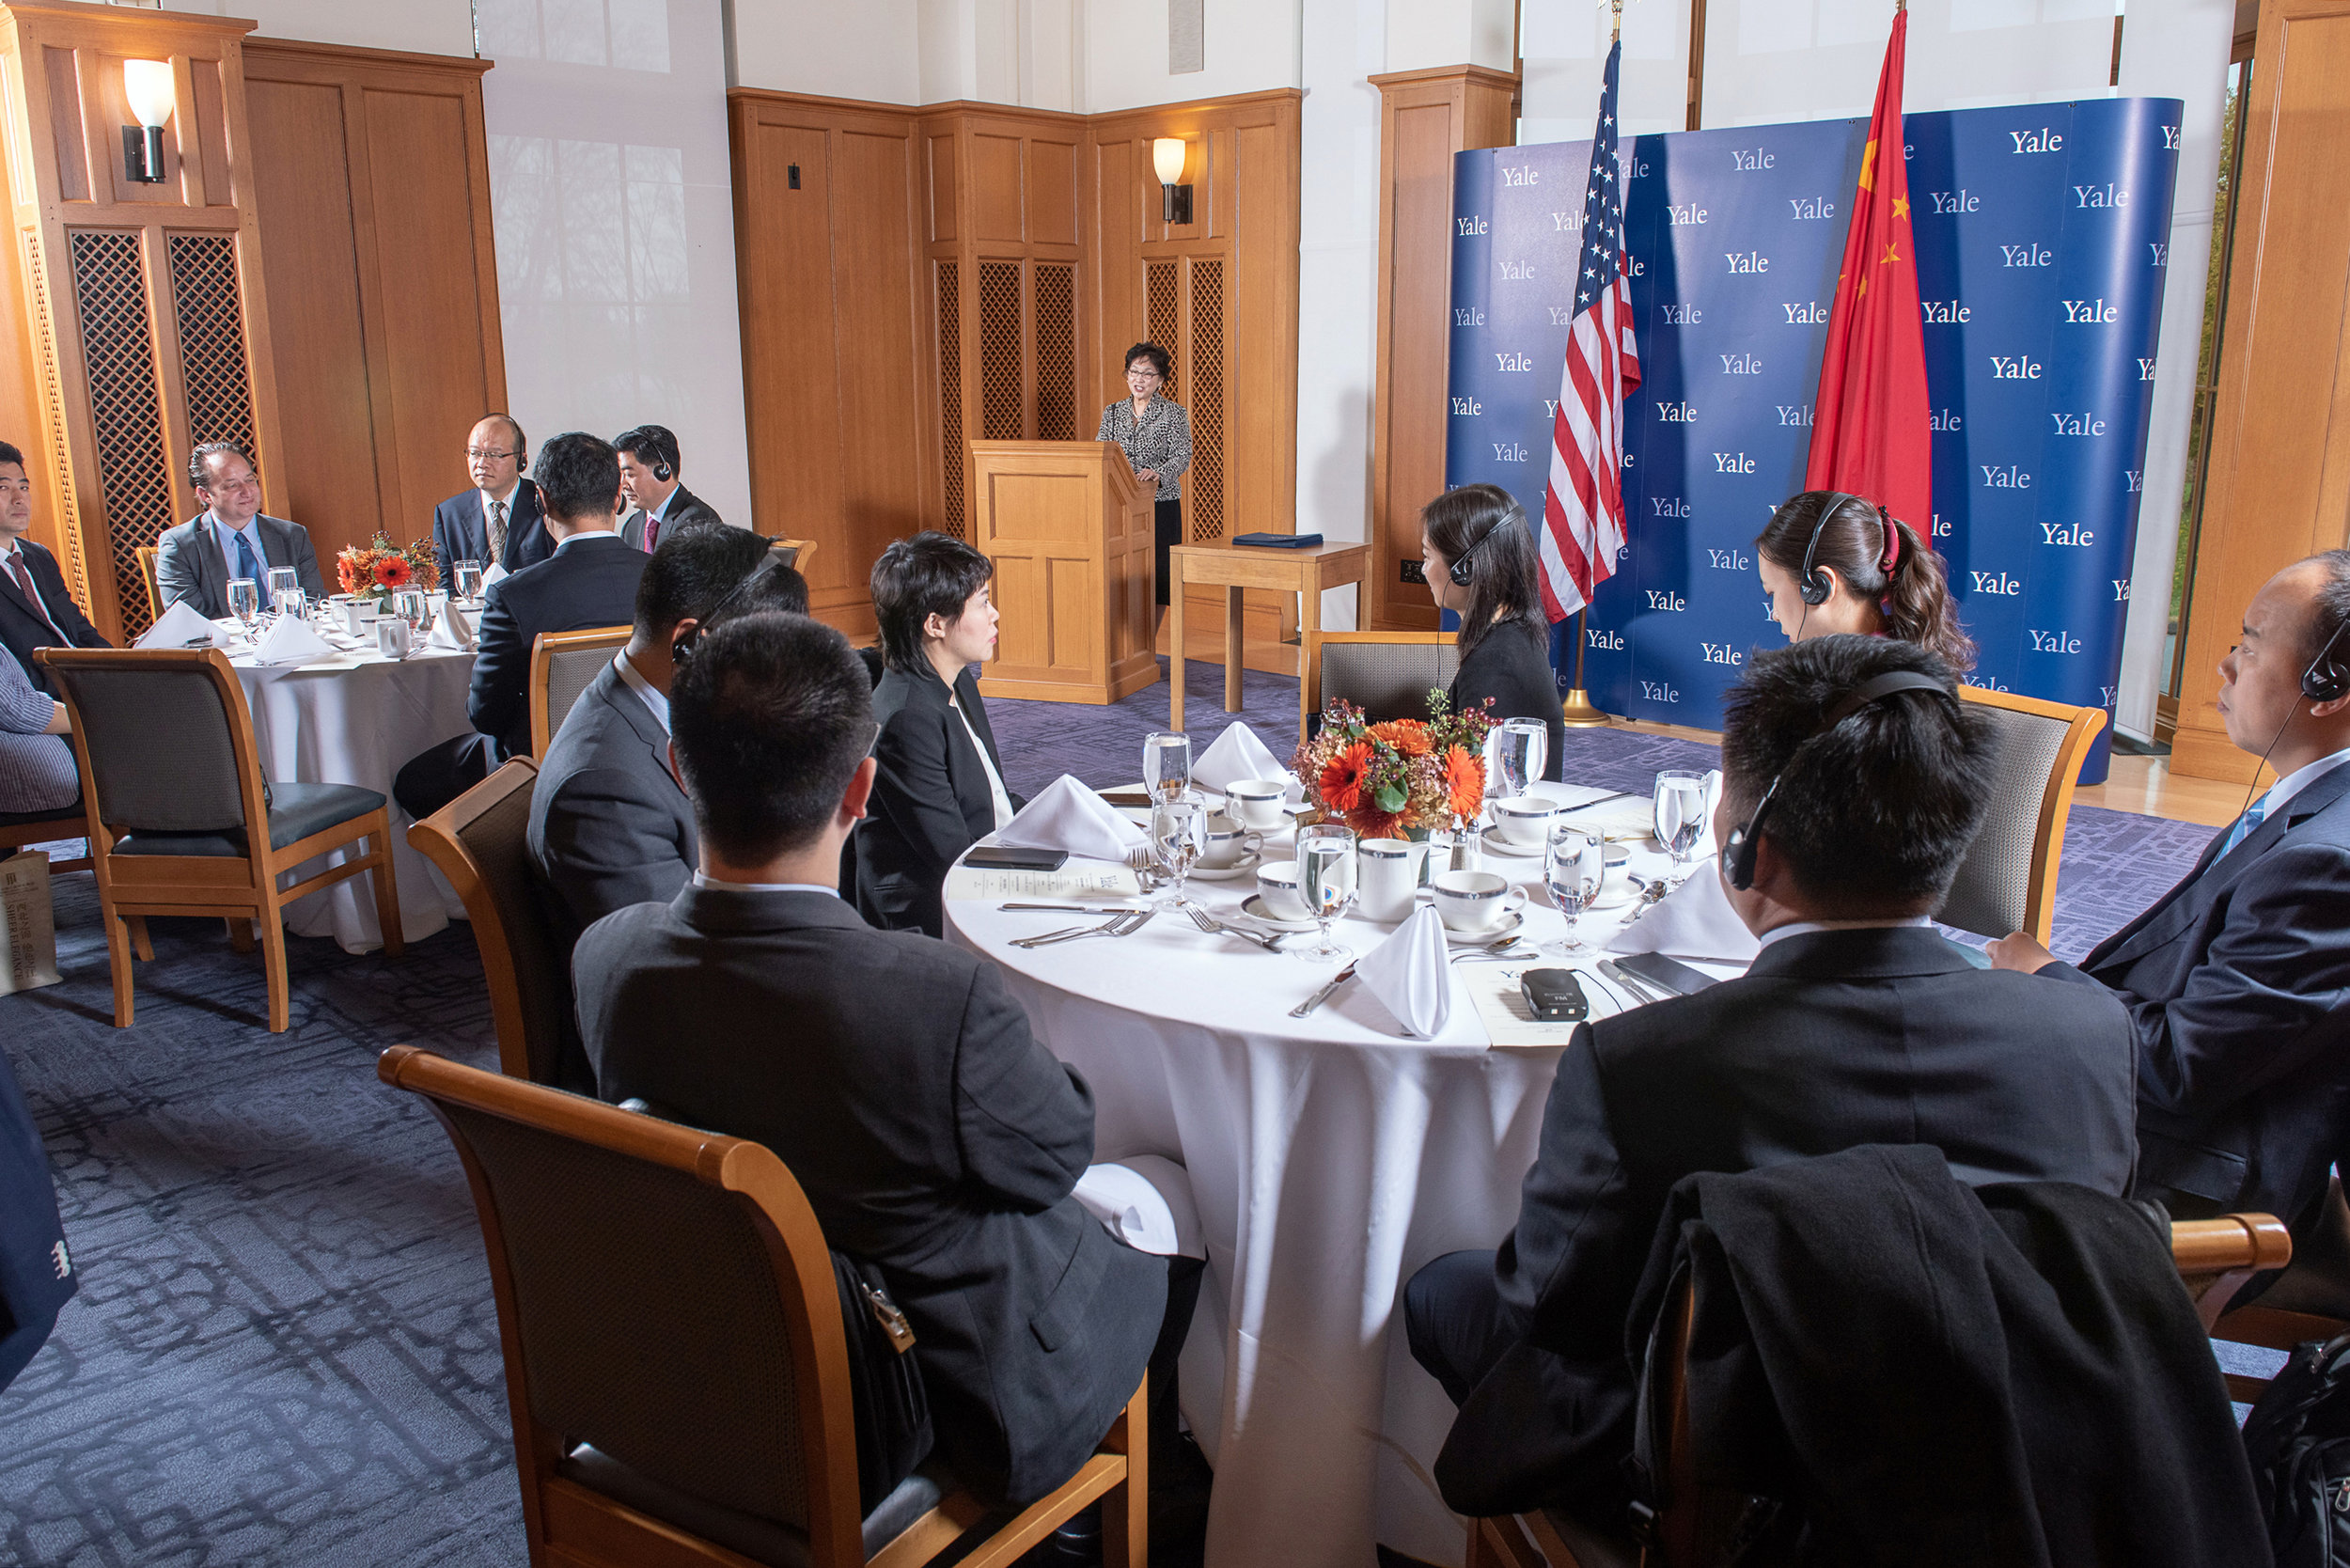 2018_11_02 Yale China Youth Leaders_Lavitt_4.jpg